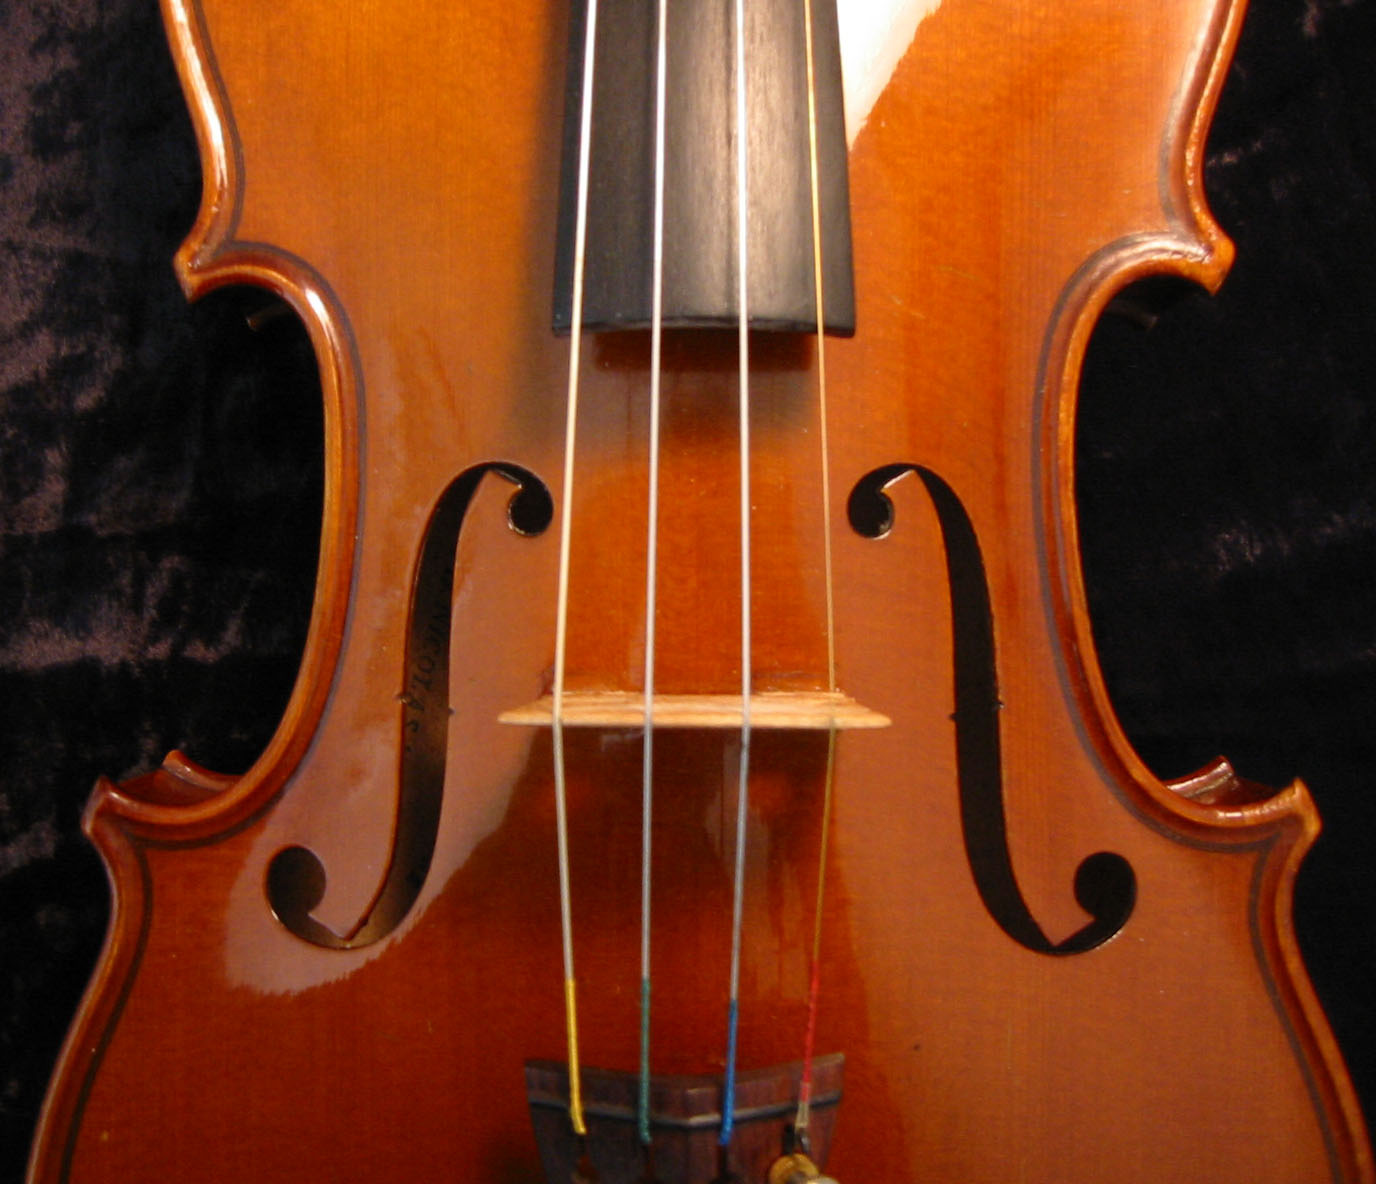 http://www.yardedge.net/wp-content/uploads/2008/11/violin.jpg